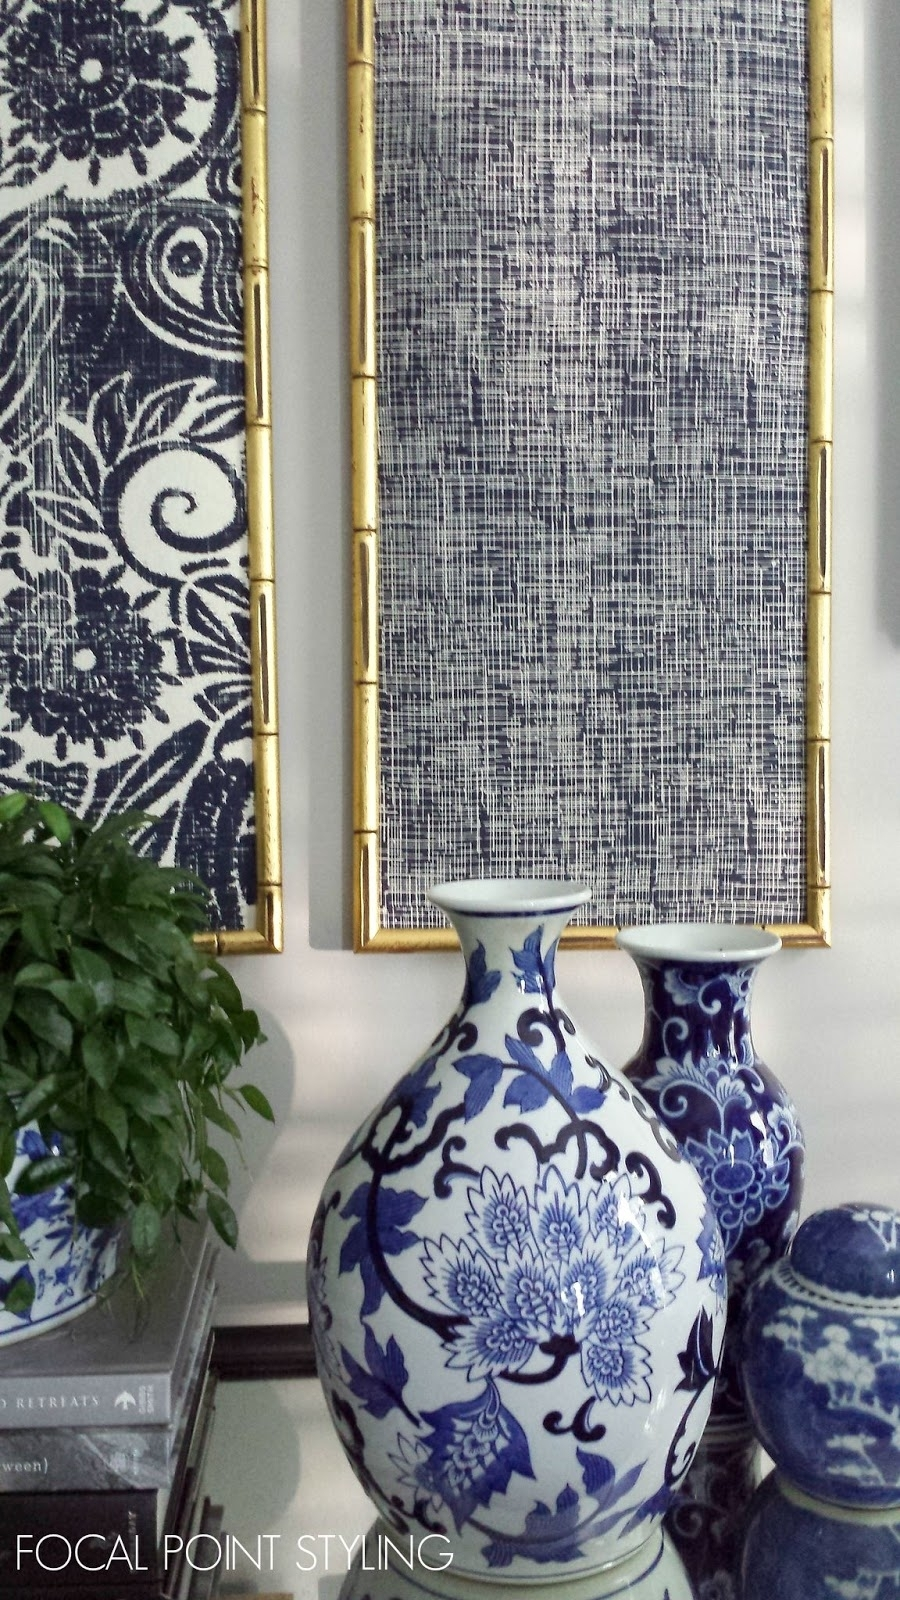 Focal Point Styling: Diy Indigo Wall Art With Framed Fabric inside Current Fabric Wall Art Panels